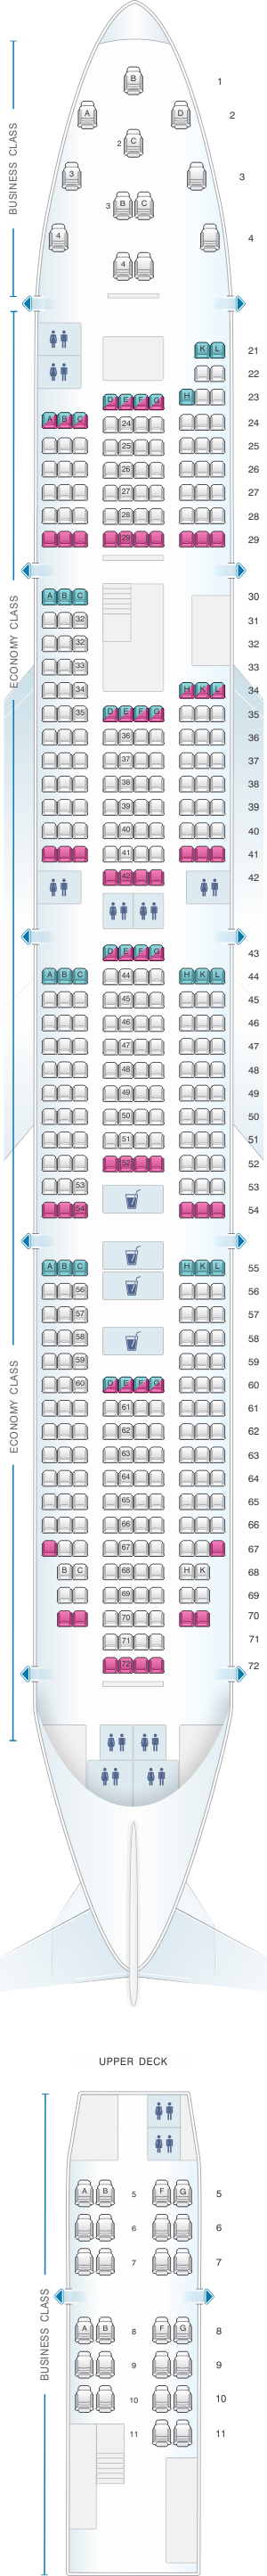 Seat map for Rossiya Airlines Boeing B747 400 V3